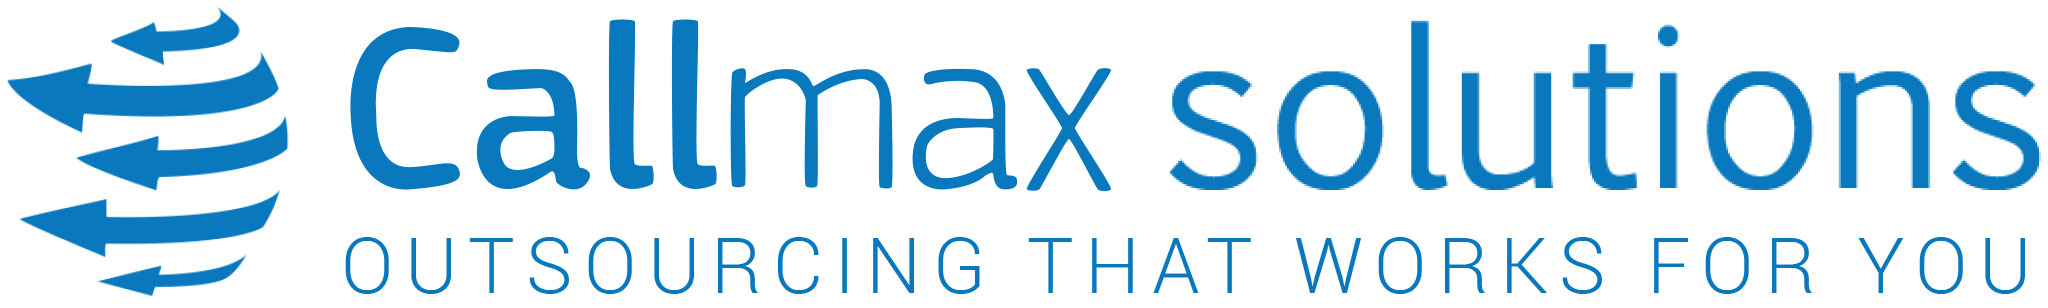 Call Max Solutions